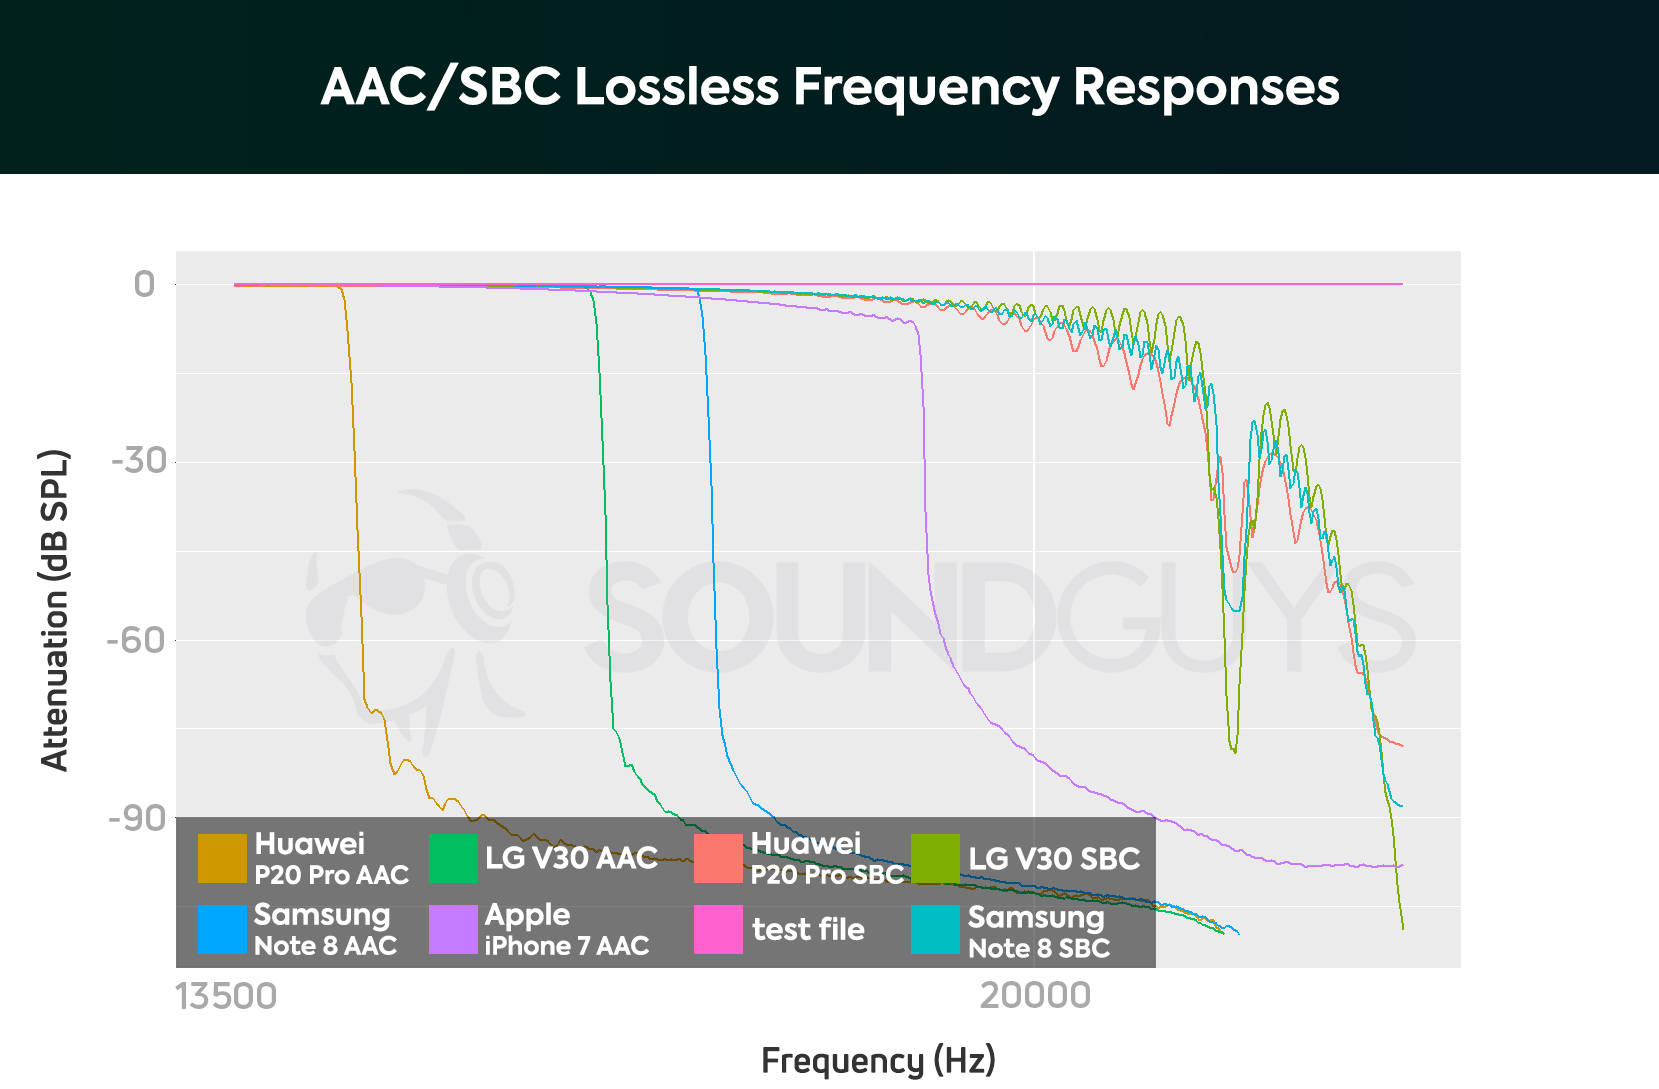 hight resolution of a chart showing the frequency response performance of the aac bluetooth wireless codec